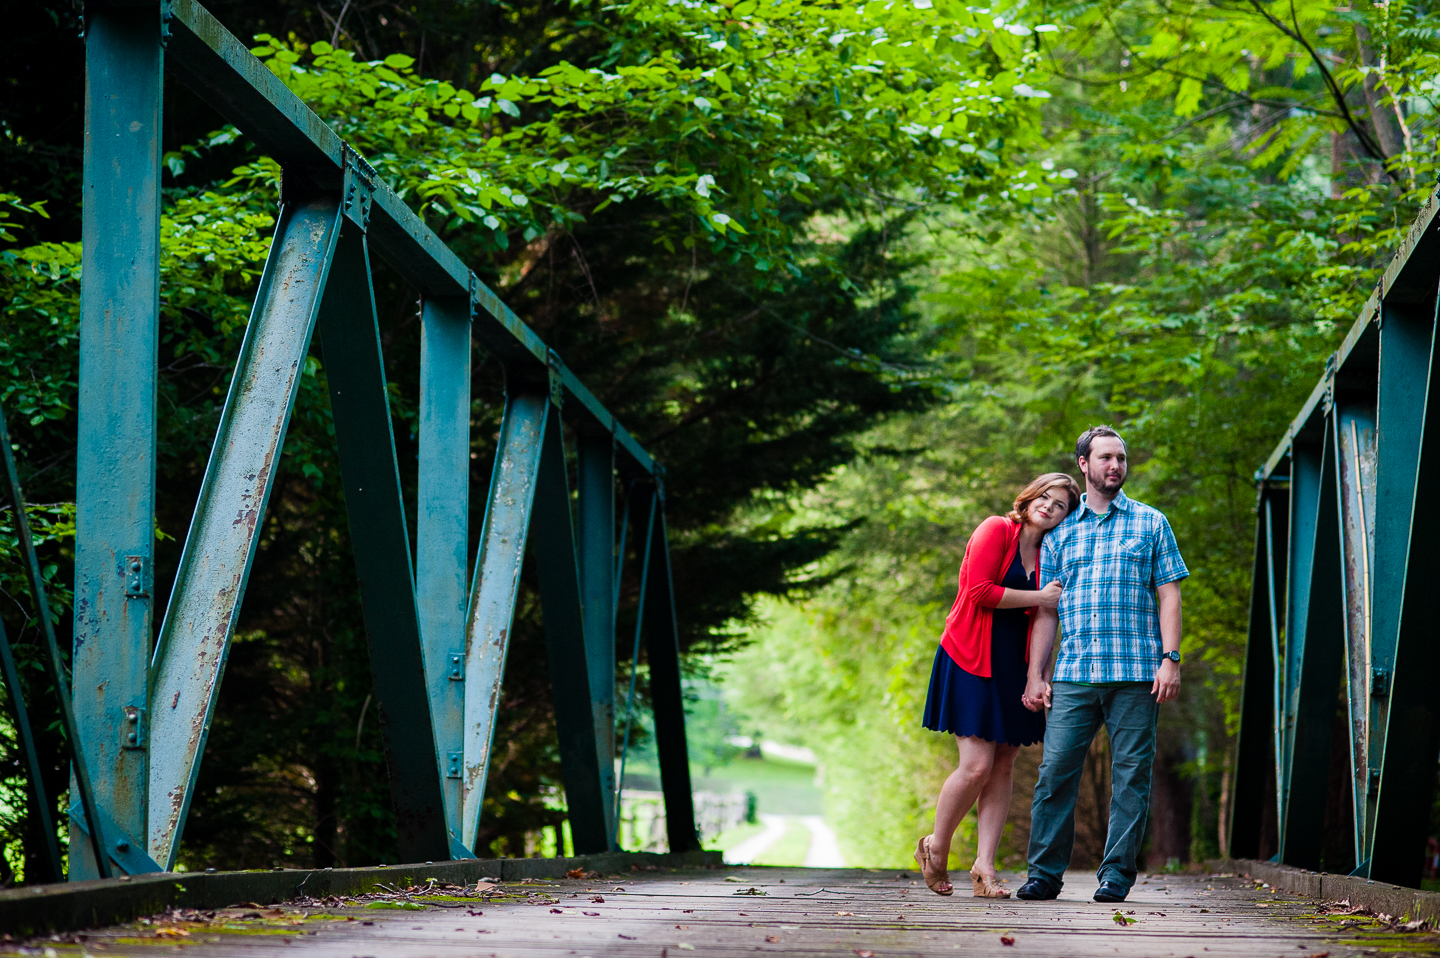 bride and groom pose for a picture on gorgeous wooden bridge in the forest during their backyard wedding